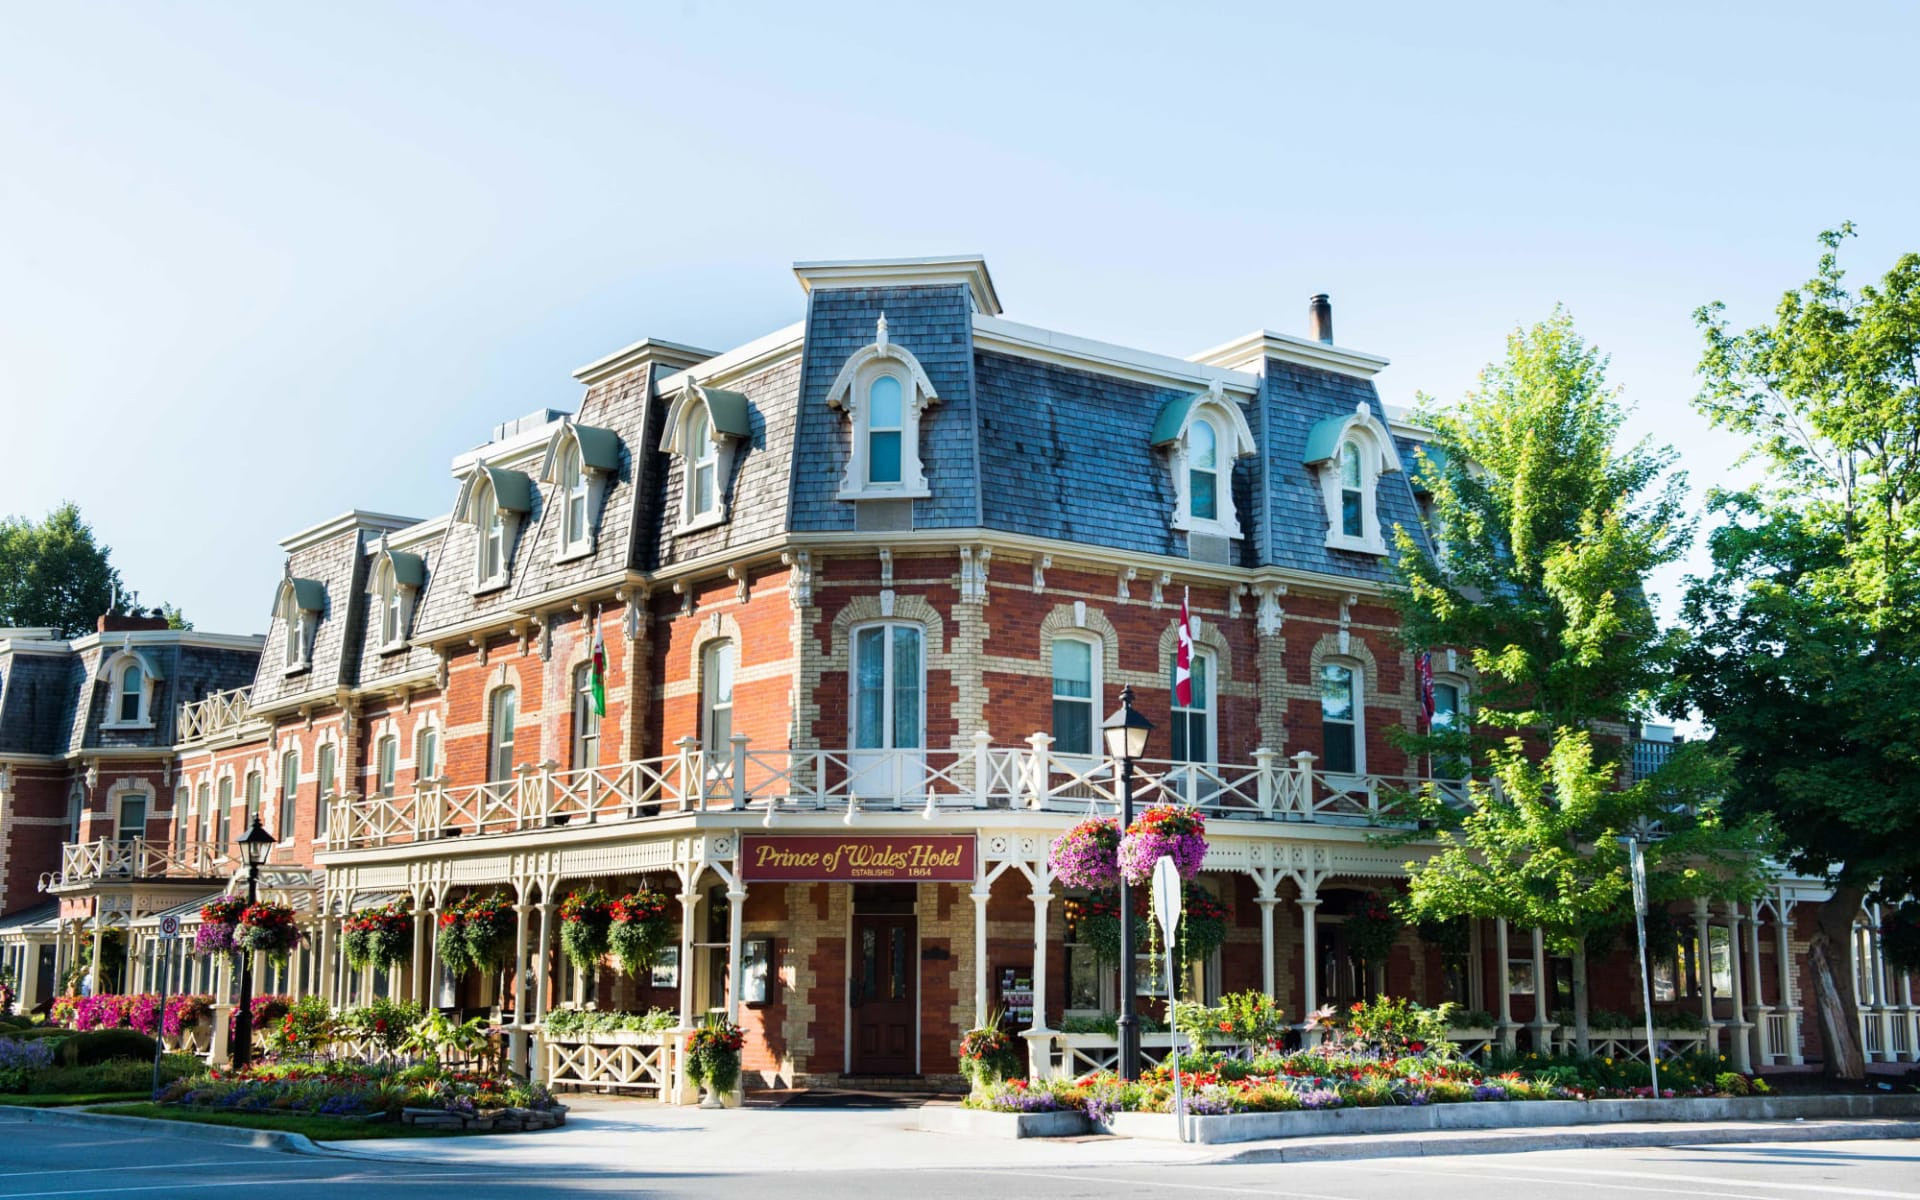 Prince of Wales in Niagara on the Lake: Aussenansicht